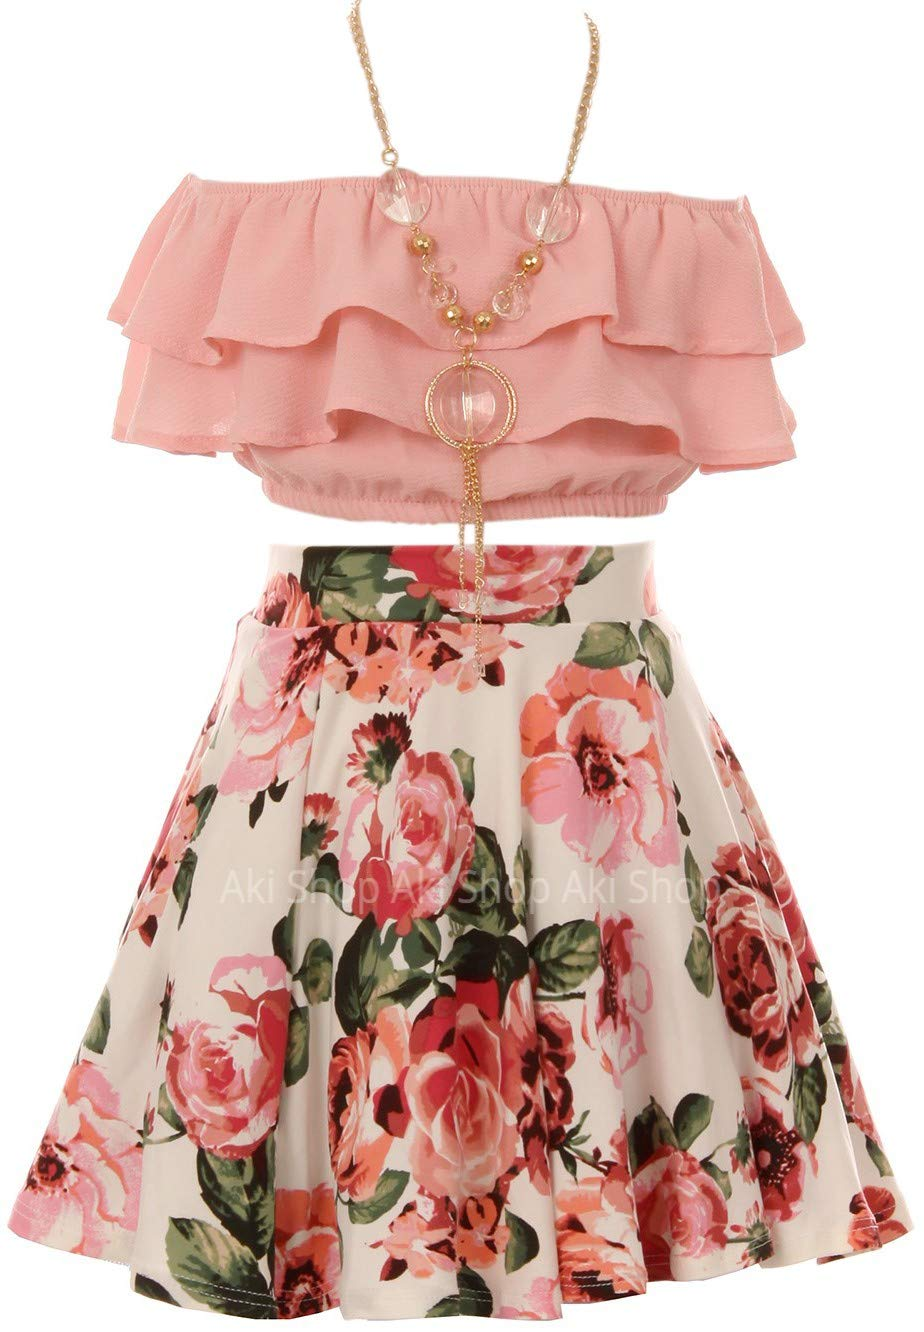 Cold Shoulder Crop Top Ruffle Layered Top Flower Girl Skirt Sets for Big Girl Blush 10 JKS 2130S by Aki_Dress (Image #1)